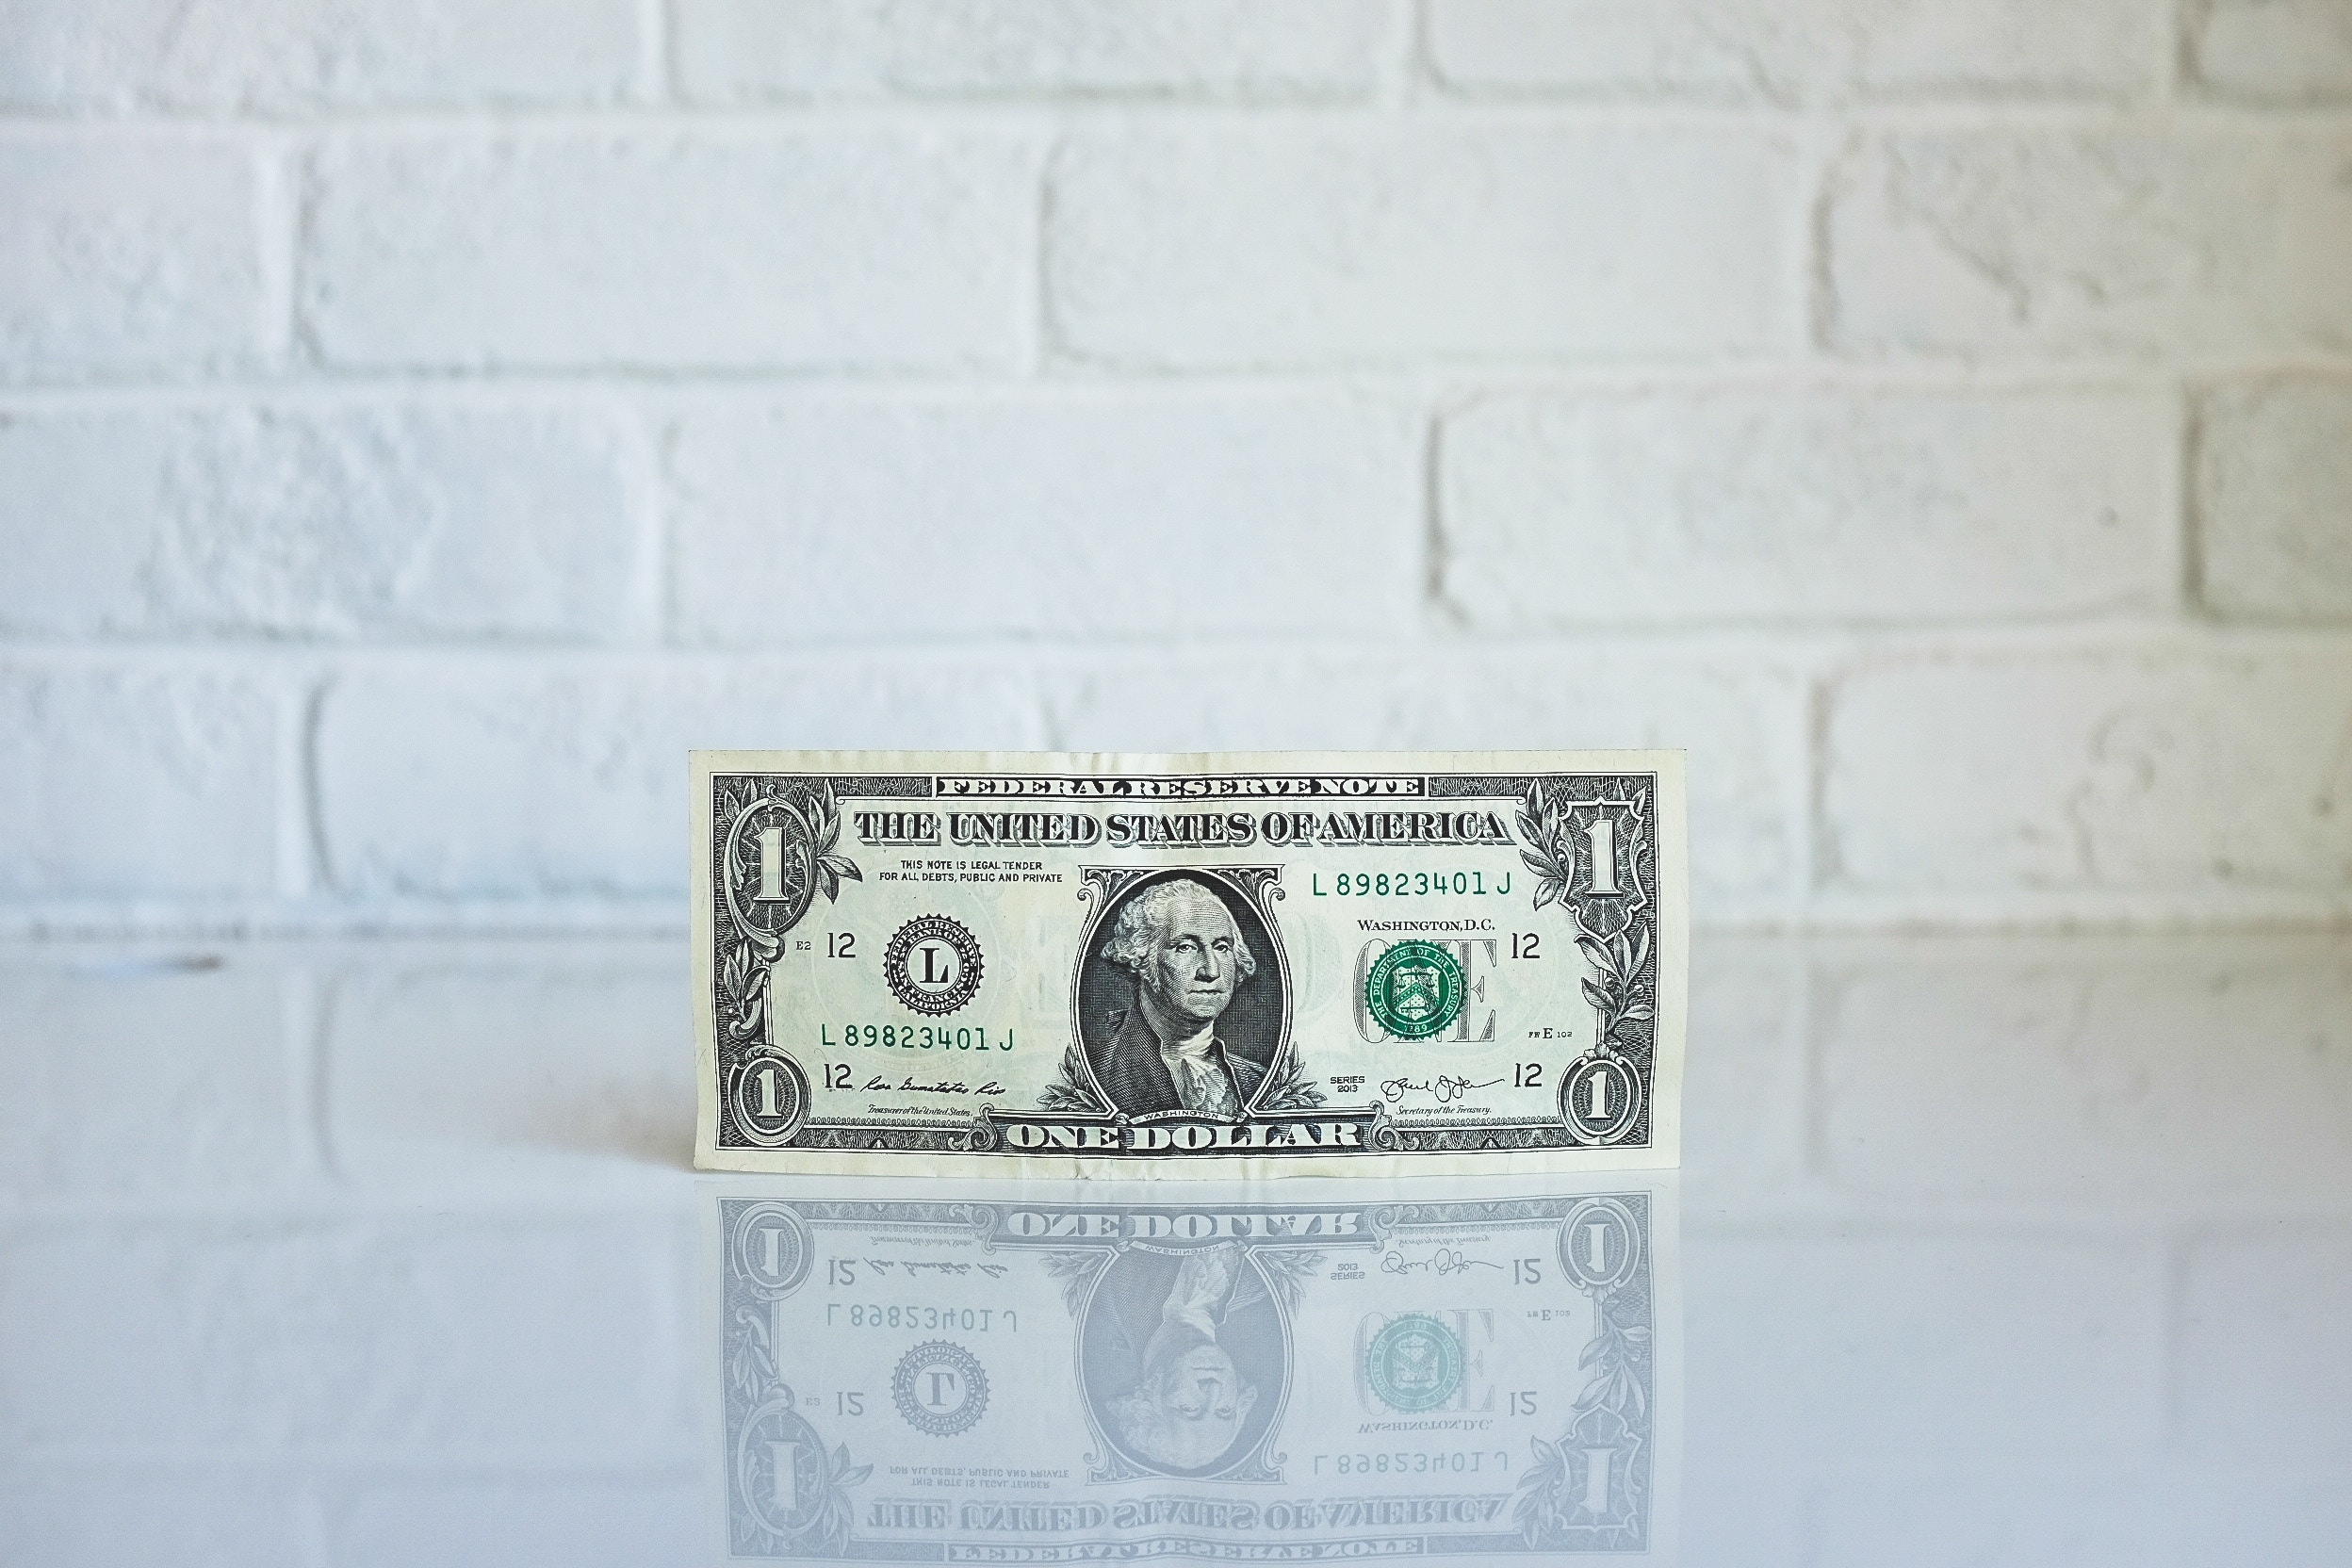 Front of a US dollar bill in front of white brick wall